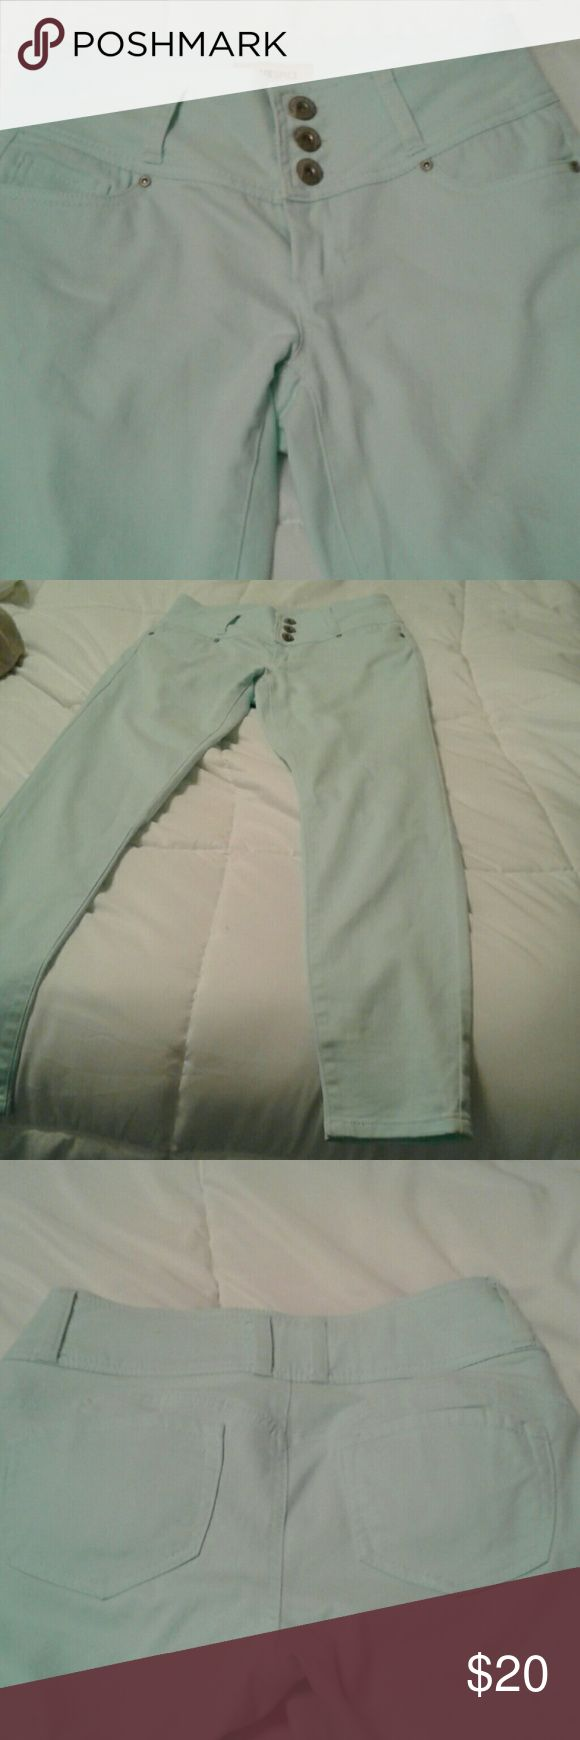 """""""Blue Spice"""" Mint Green Jeans/Pants.  Cute! 5 68% cotton, 30% polyester, 2% spandex.  Fabric mixture gives a brushed cotton soft feel, cut is flattering 2 any shape body, all pockets are functional.  Material is forgiving if a couple of pounds are gained.  Flattering, unique cut and design. Blue Spice Jeans Straight Leg"""